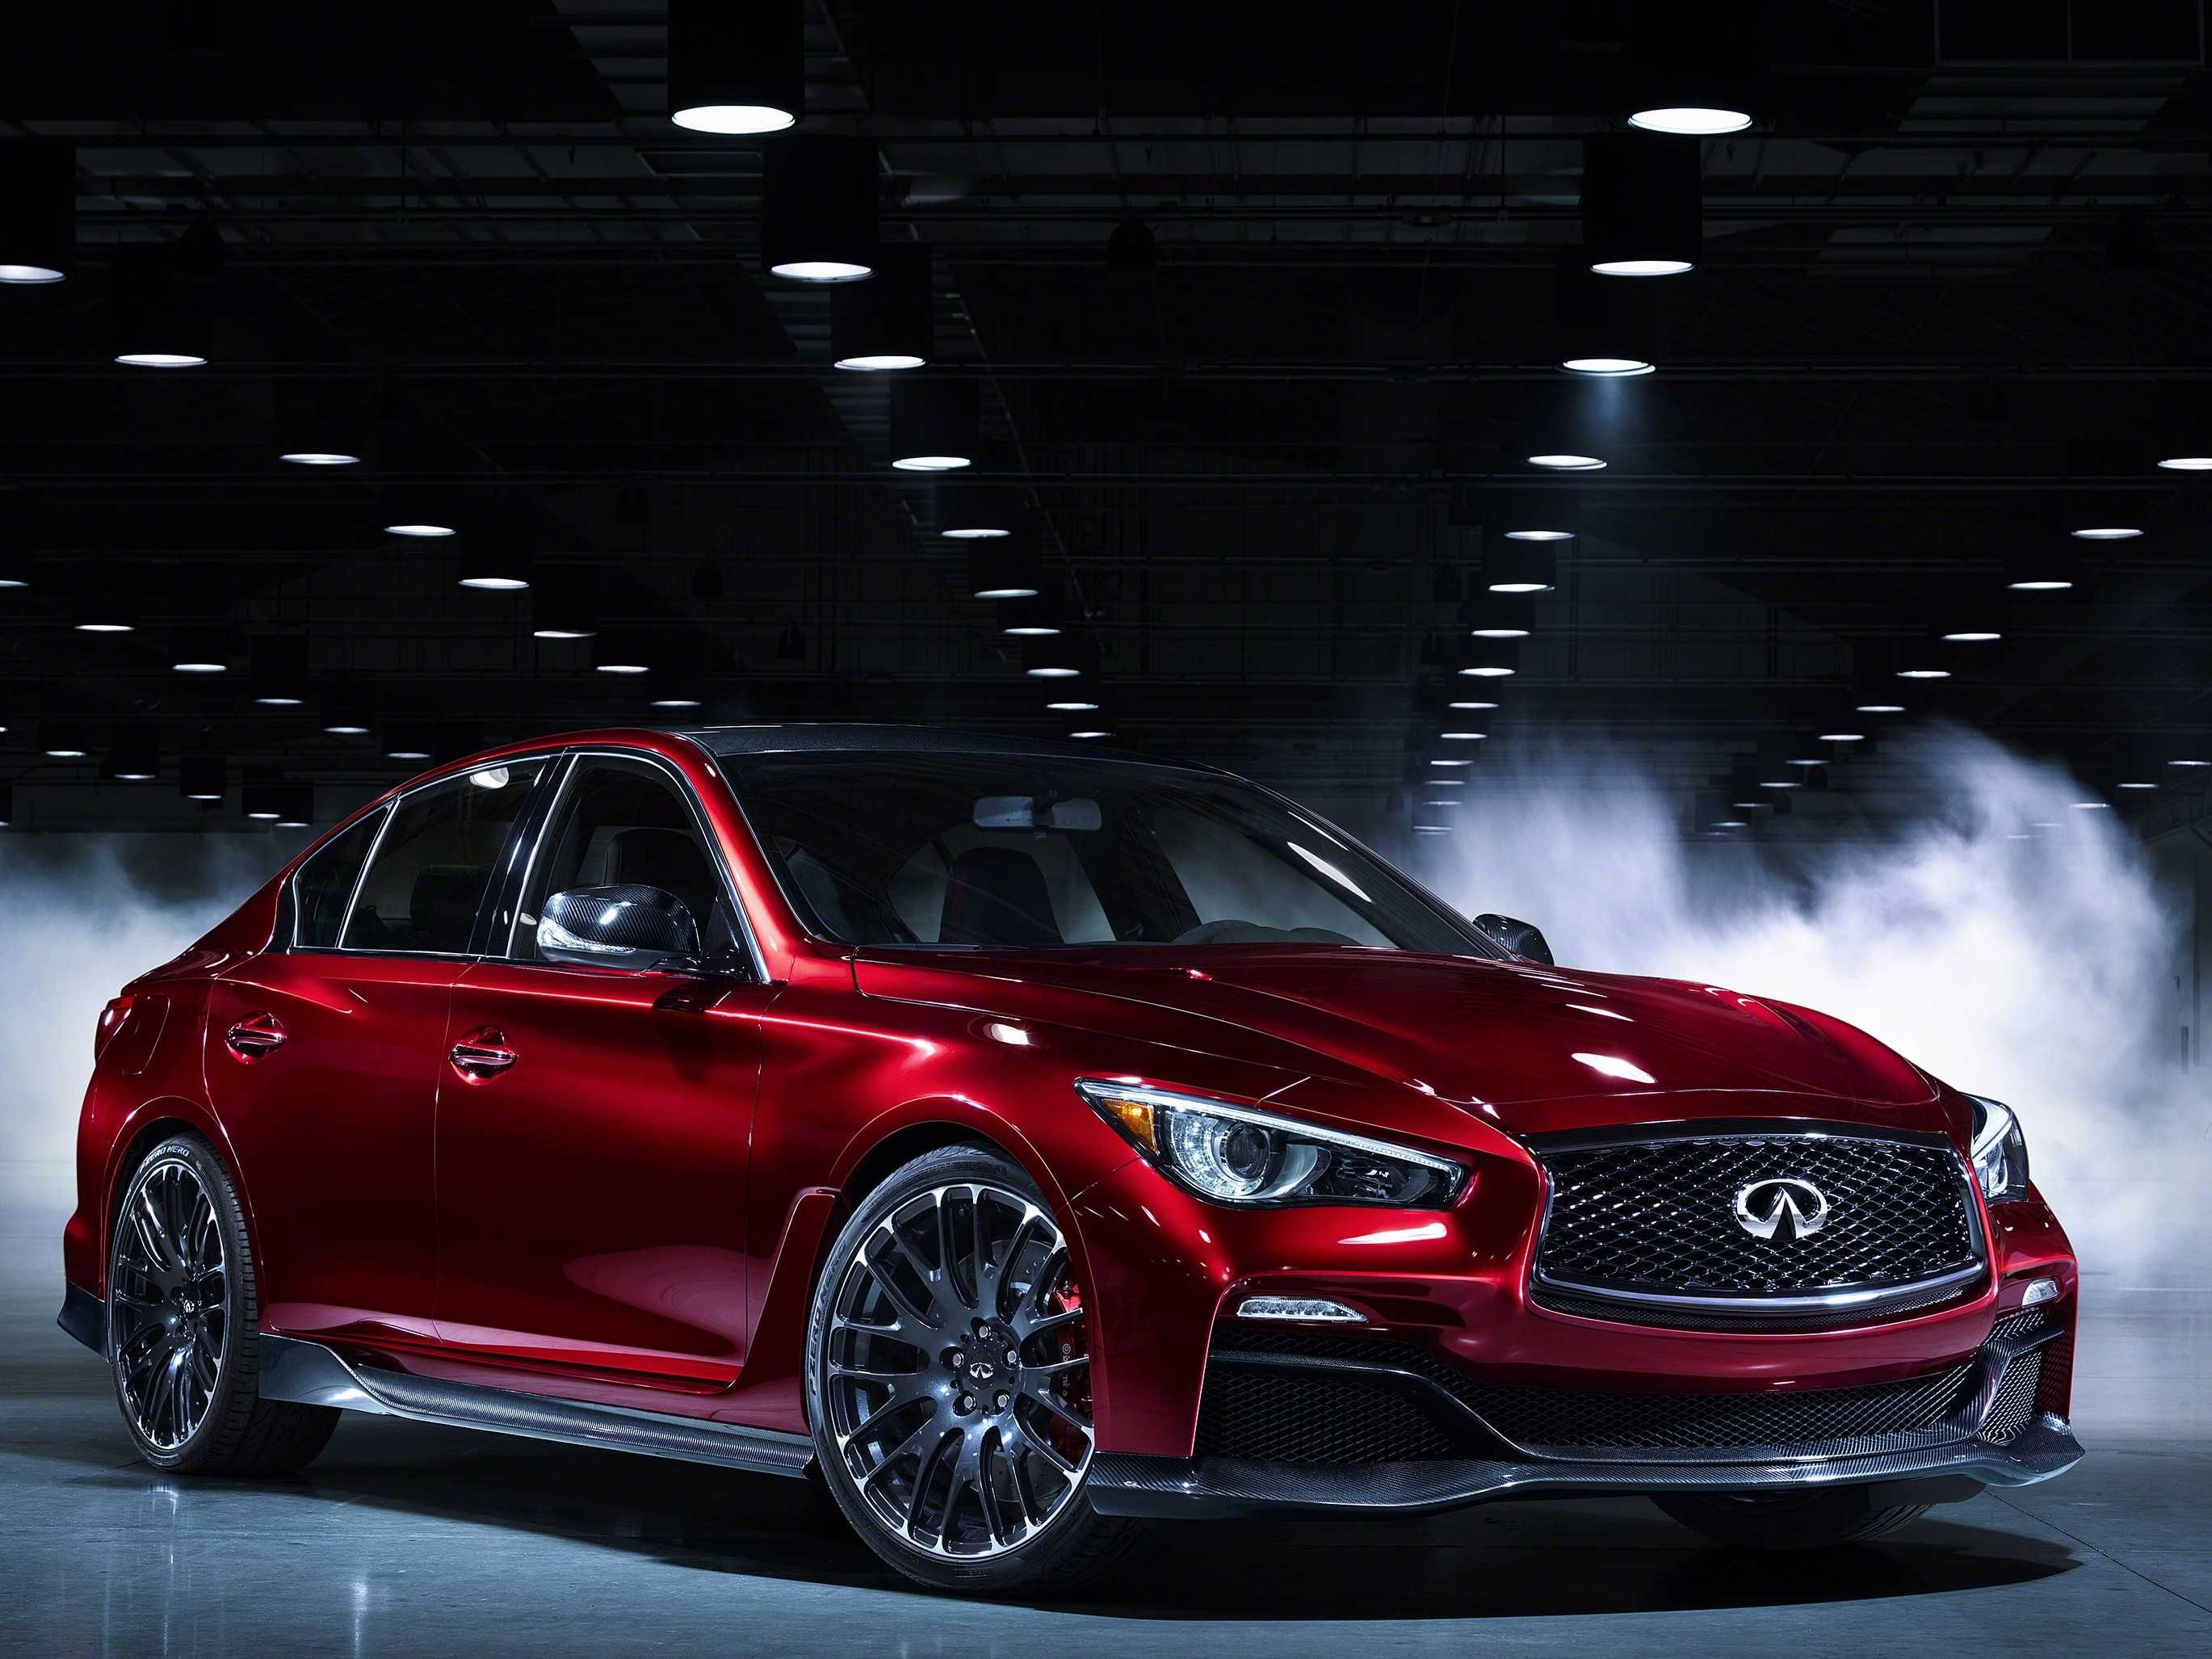 Were About To Find Out If Infiniti Is Serious About Being A Top Luxury Car Brand Jpg Infiniti Q50 Sedan Cars Top Luxury Cars